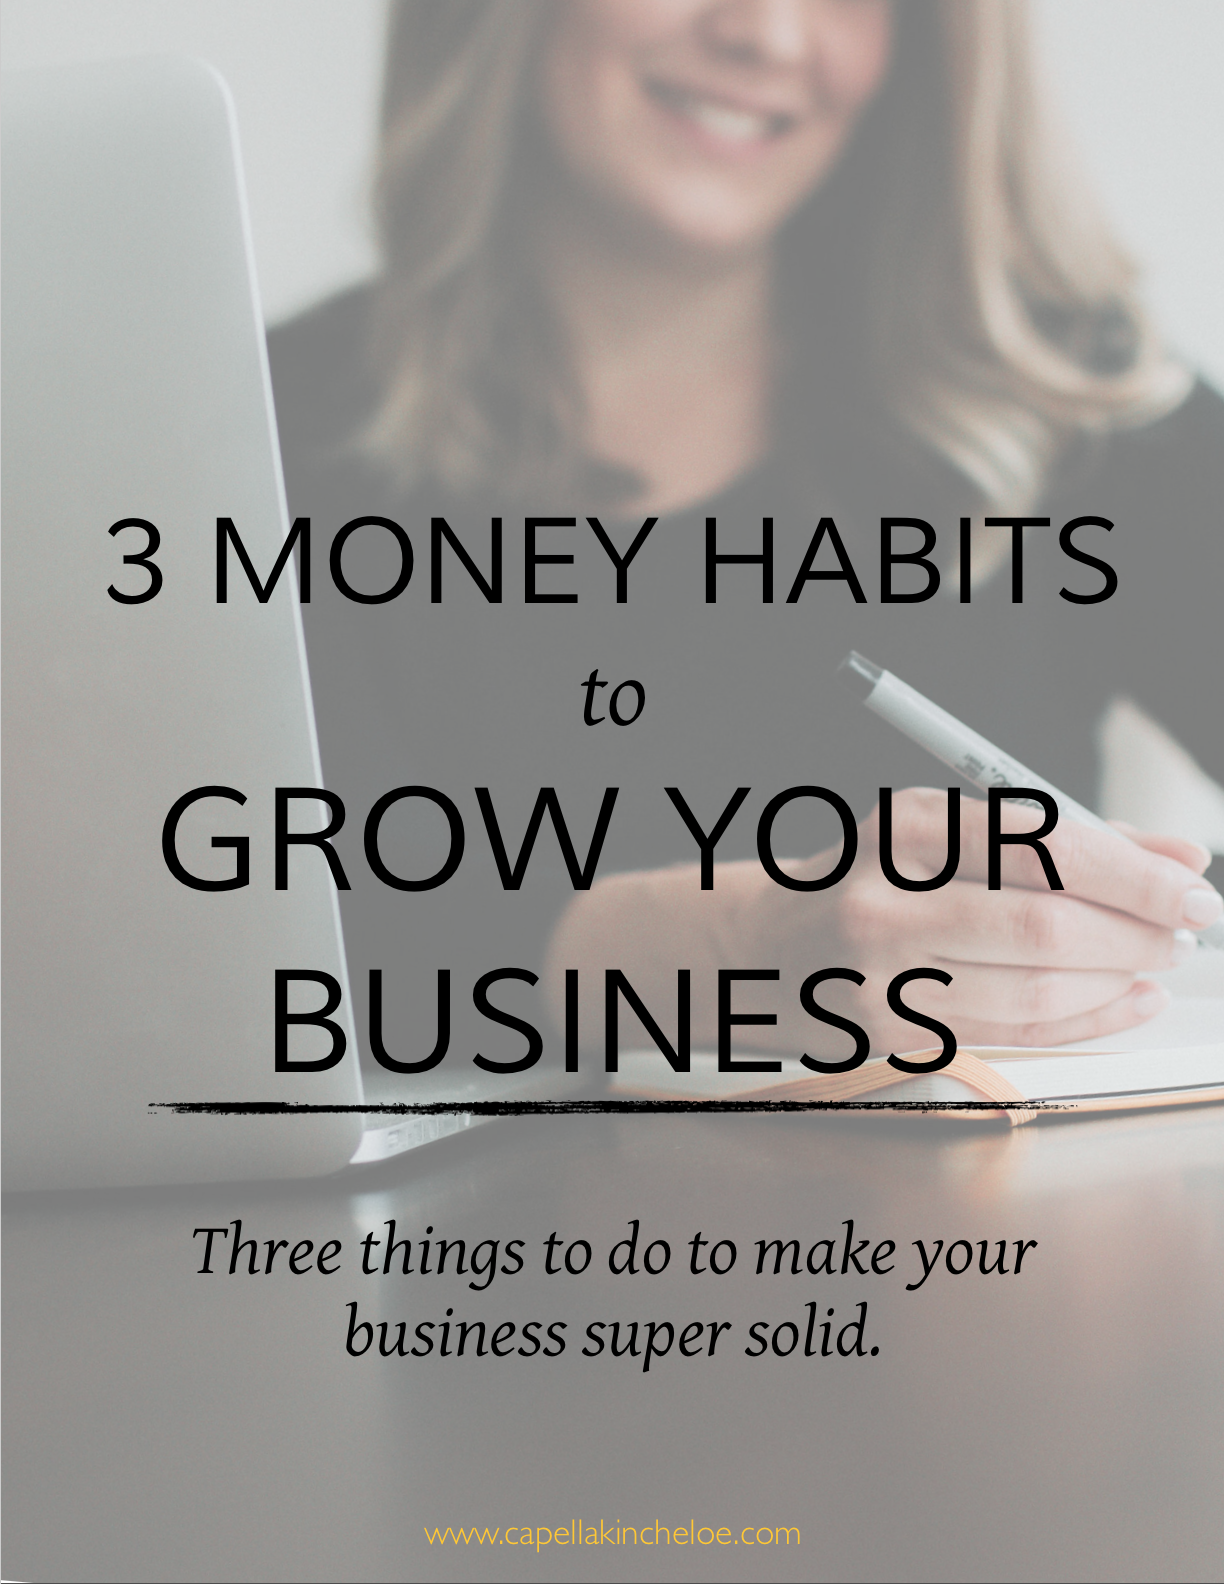 Running an interior design business?  It's time to get serious about creating good habits to run your business.  Here are three great money habits to make your business super solid.